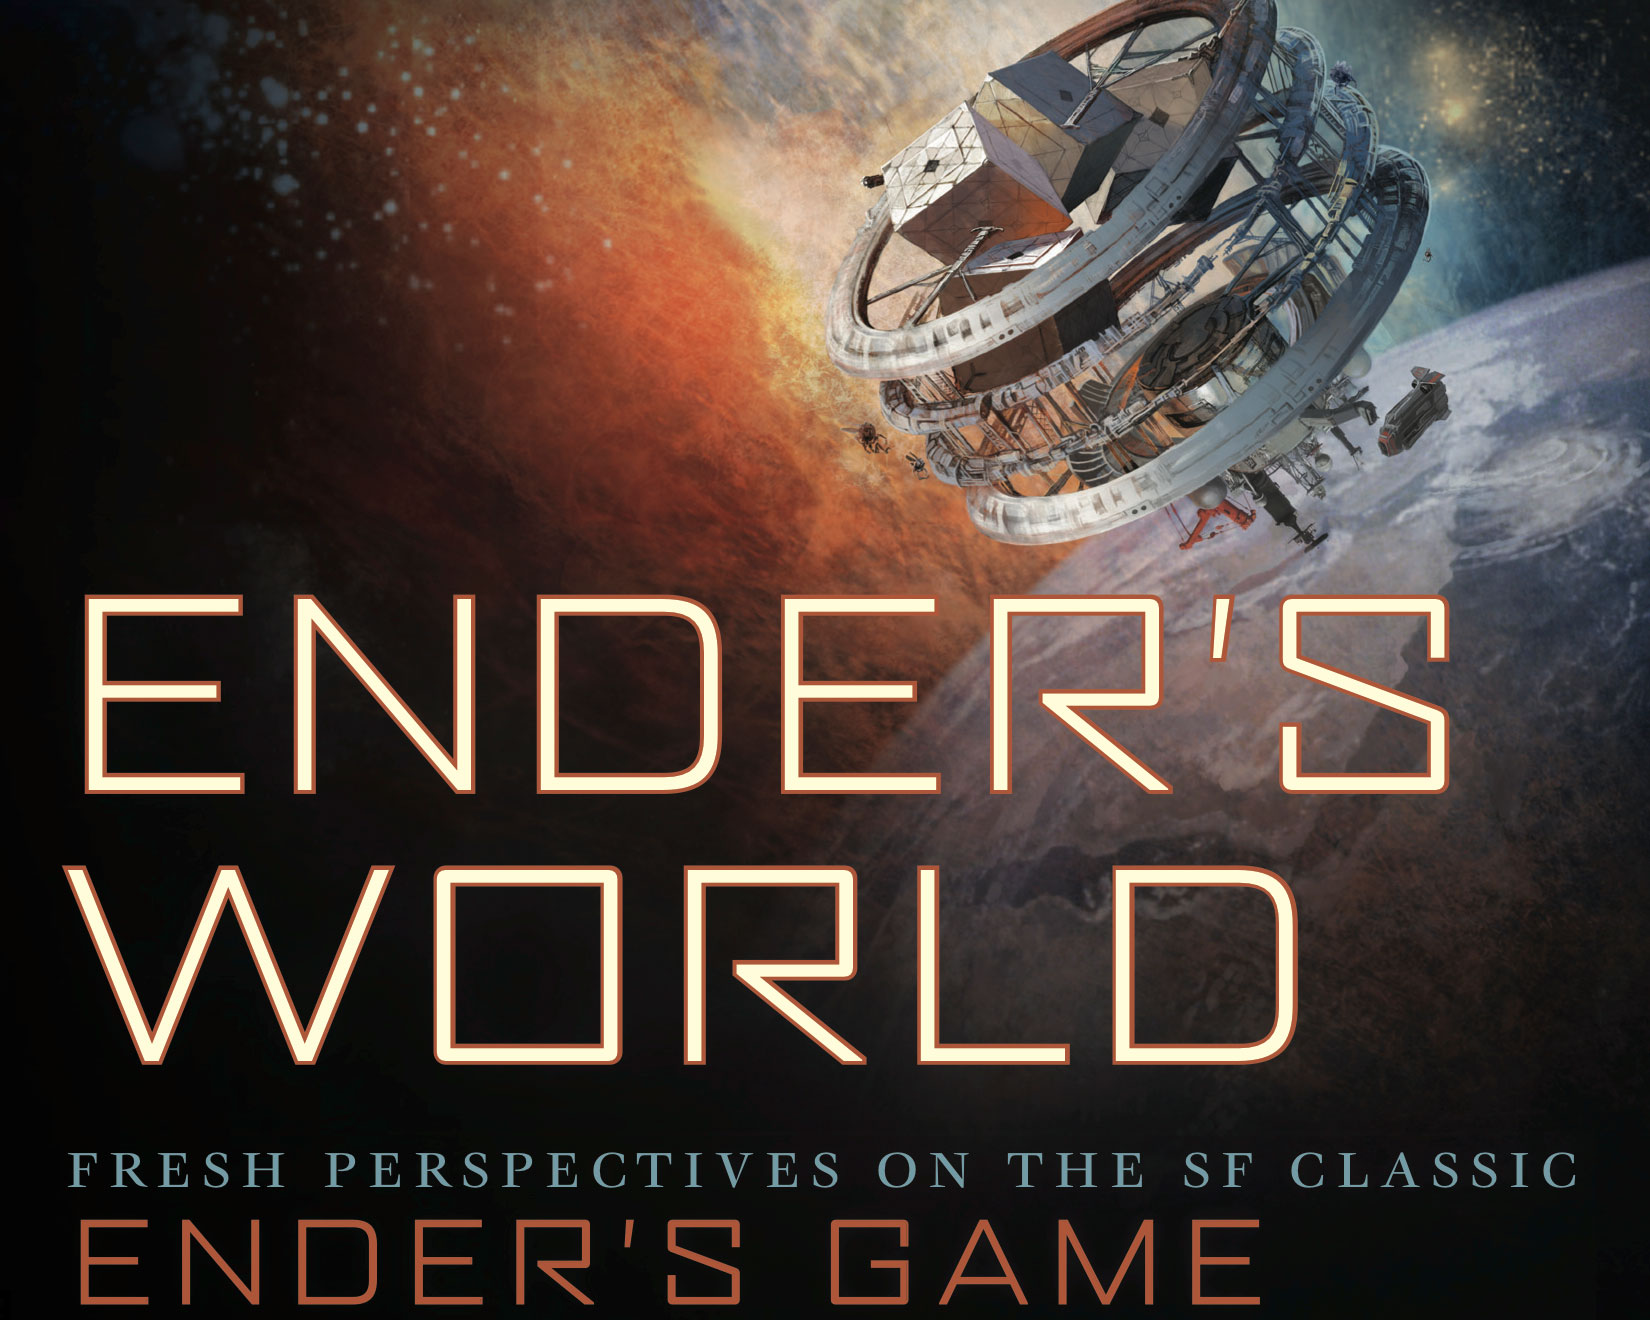 enders game critical essay paper Download thesis statement on enders game in our database or order an original thesis paper that will be written by one of our staff writers and delivered according to the deadline.